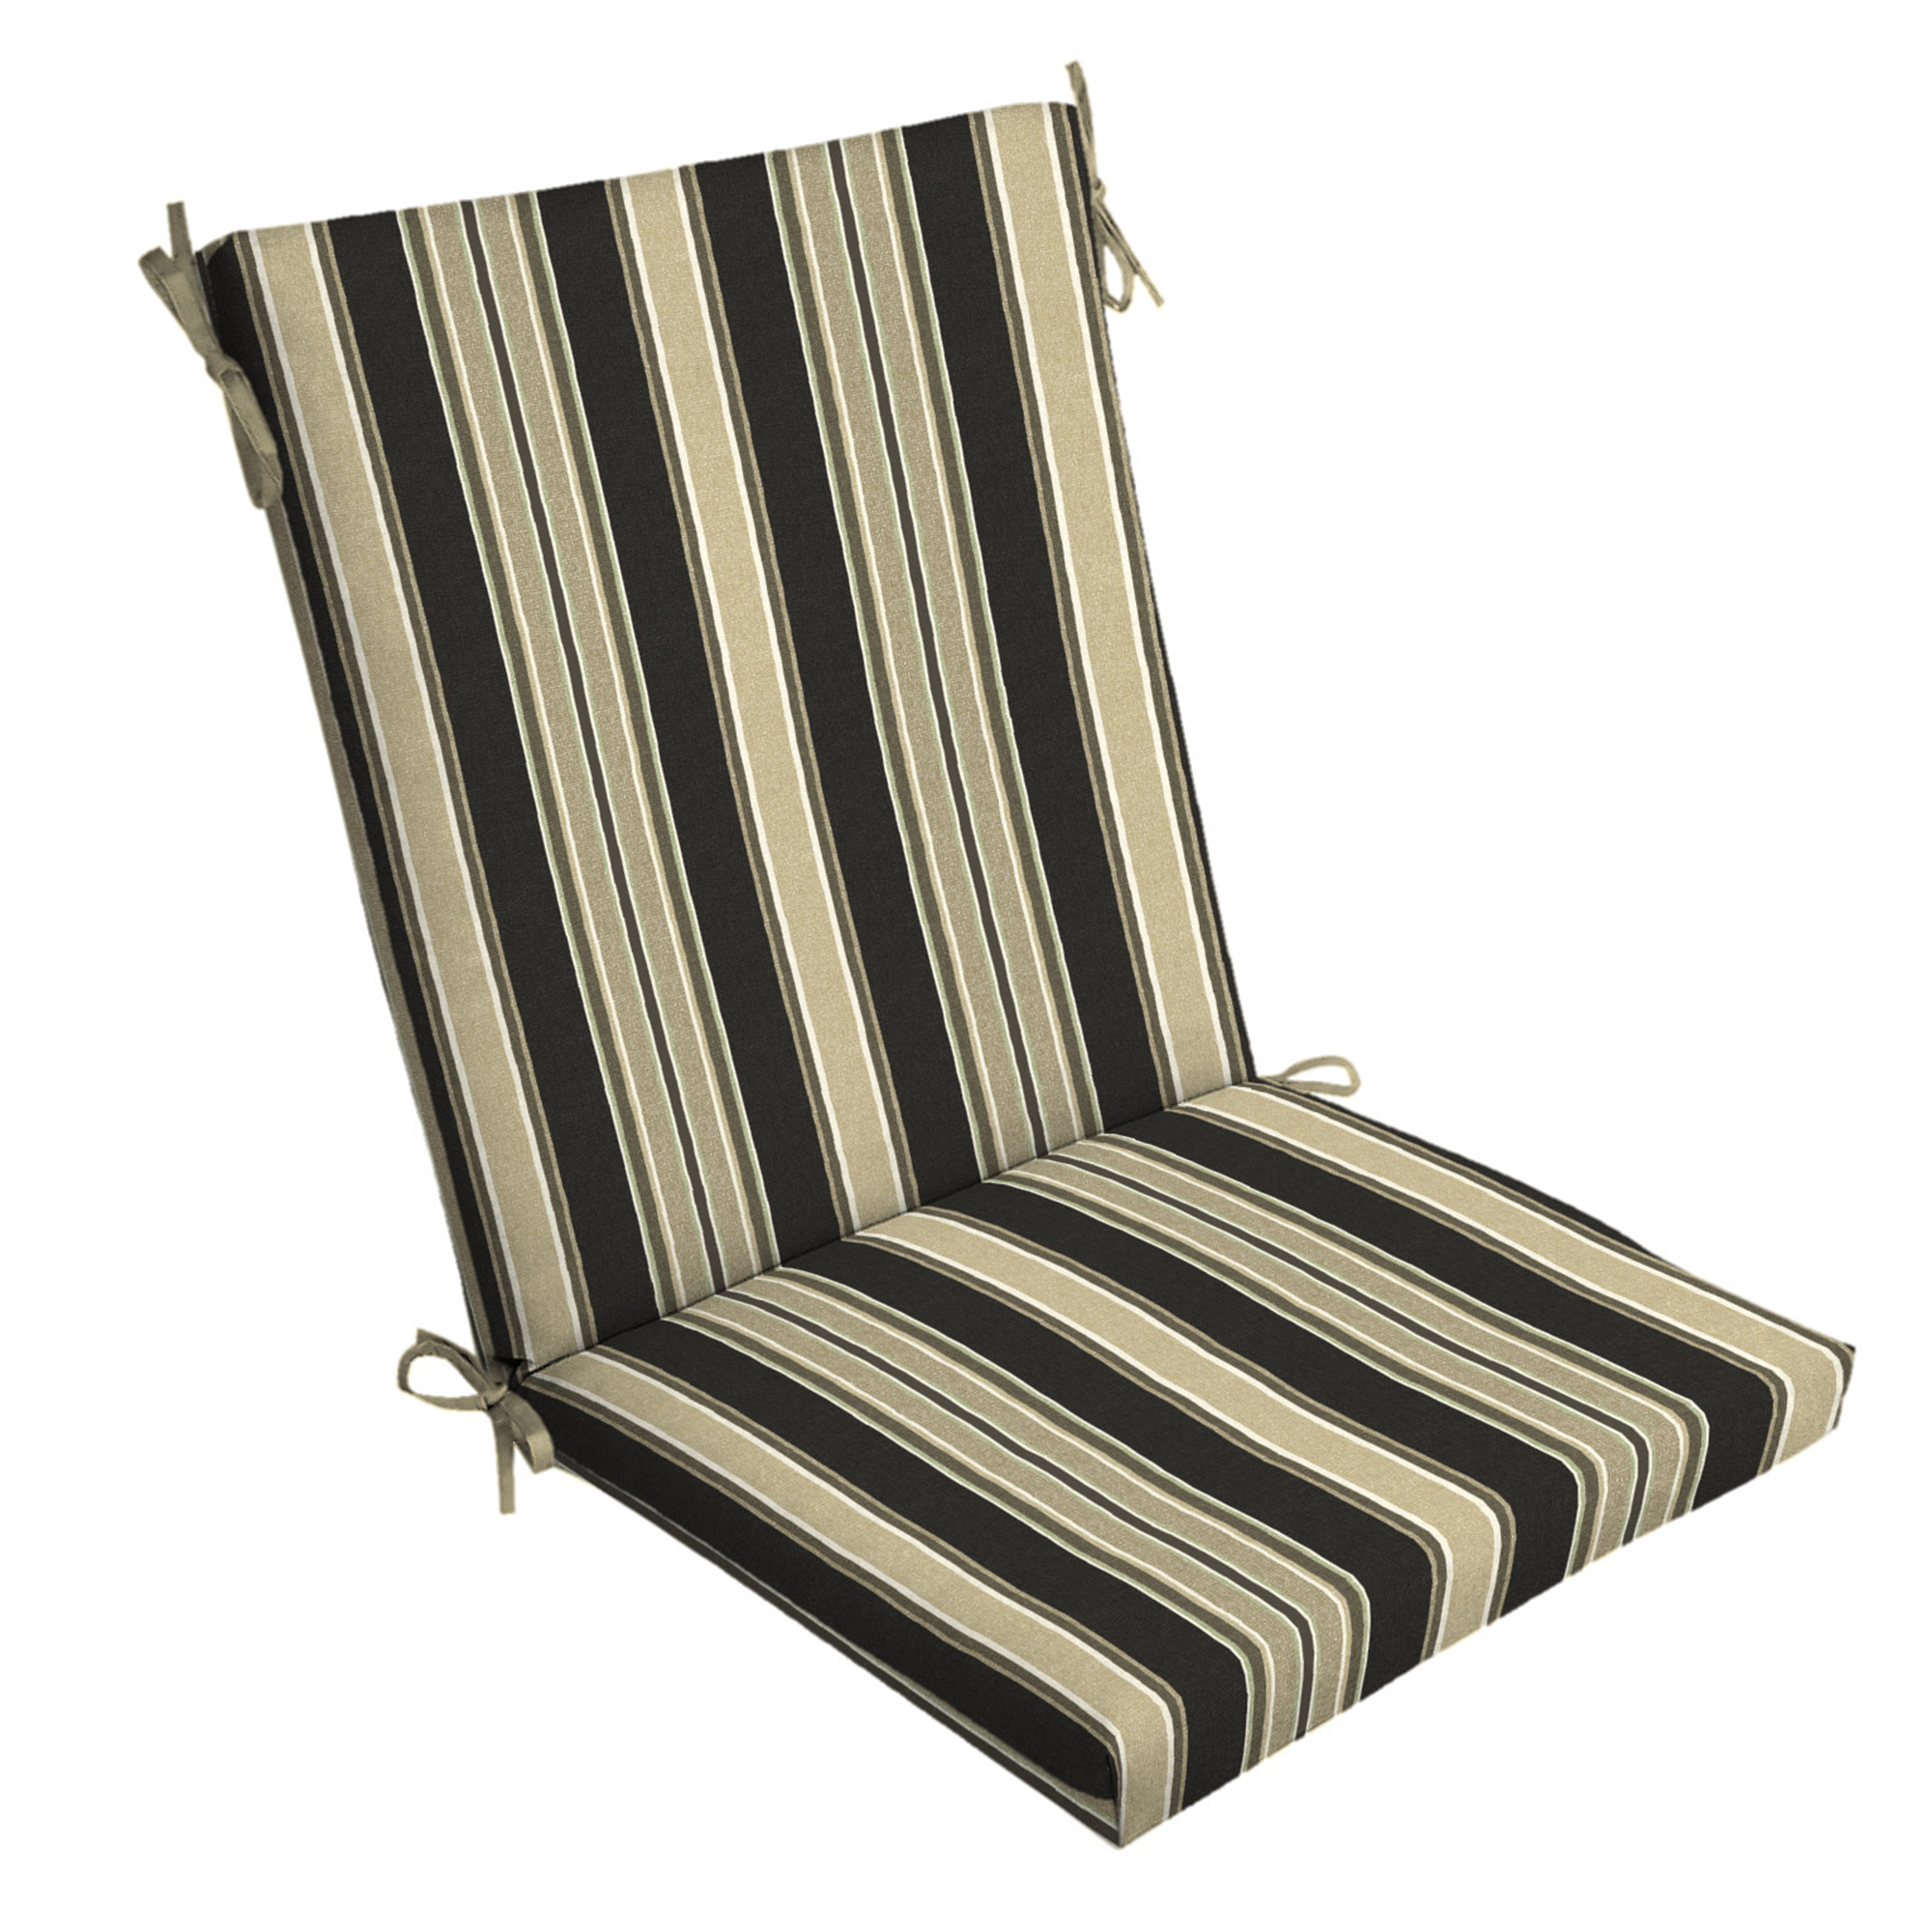 Arden Selections Jade Leala 44 x 20 in. Outdoor Chair Cushion